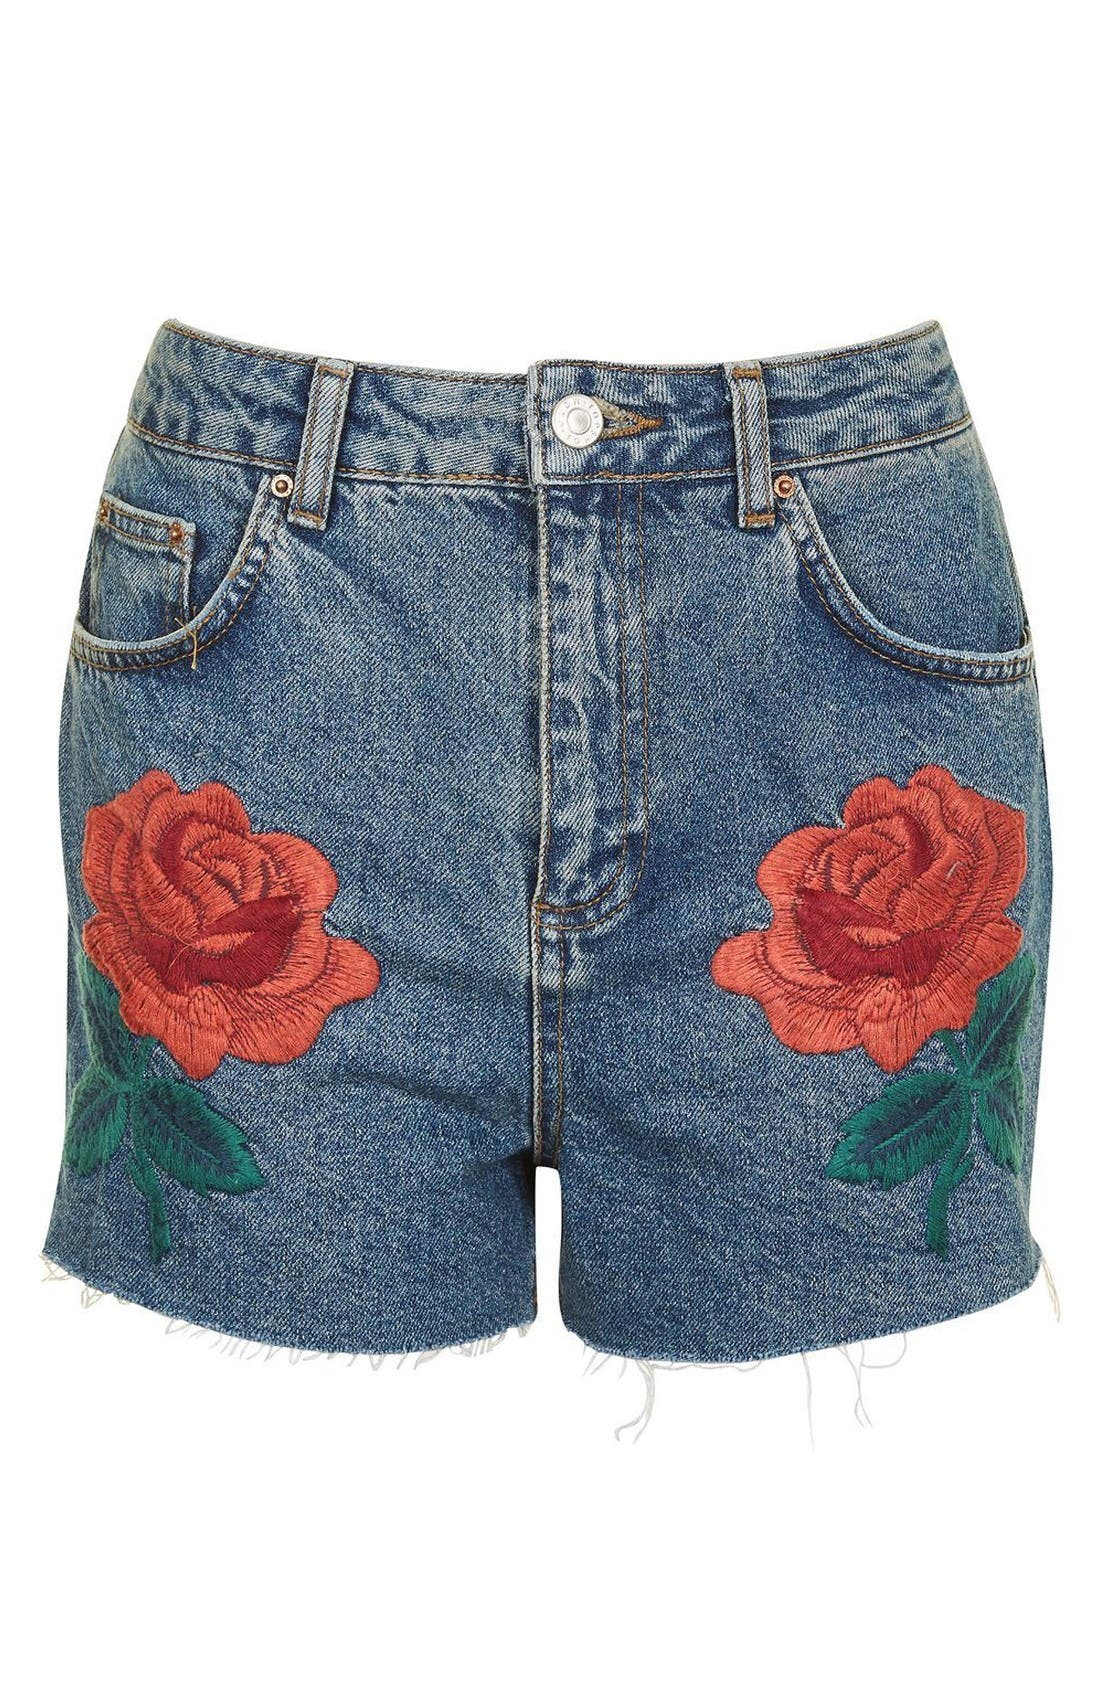 Alternate Image 1 Selected - Topshop Rose Embroidered Mom Shorts